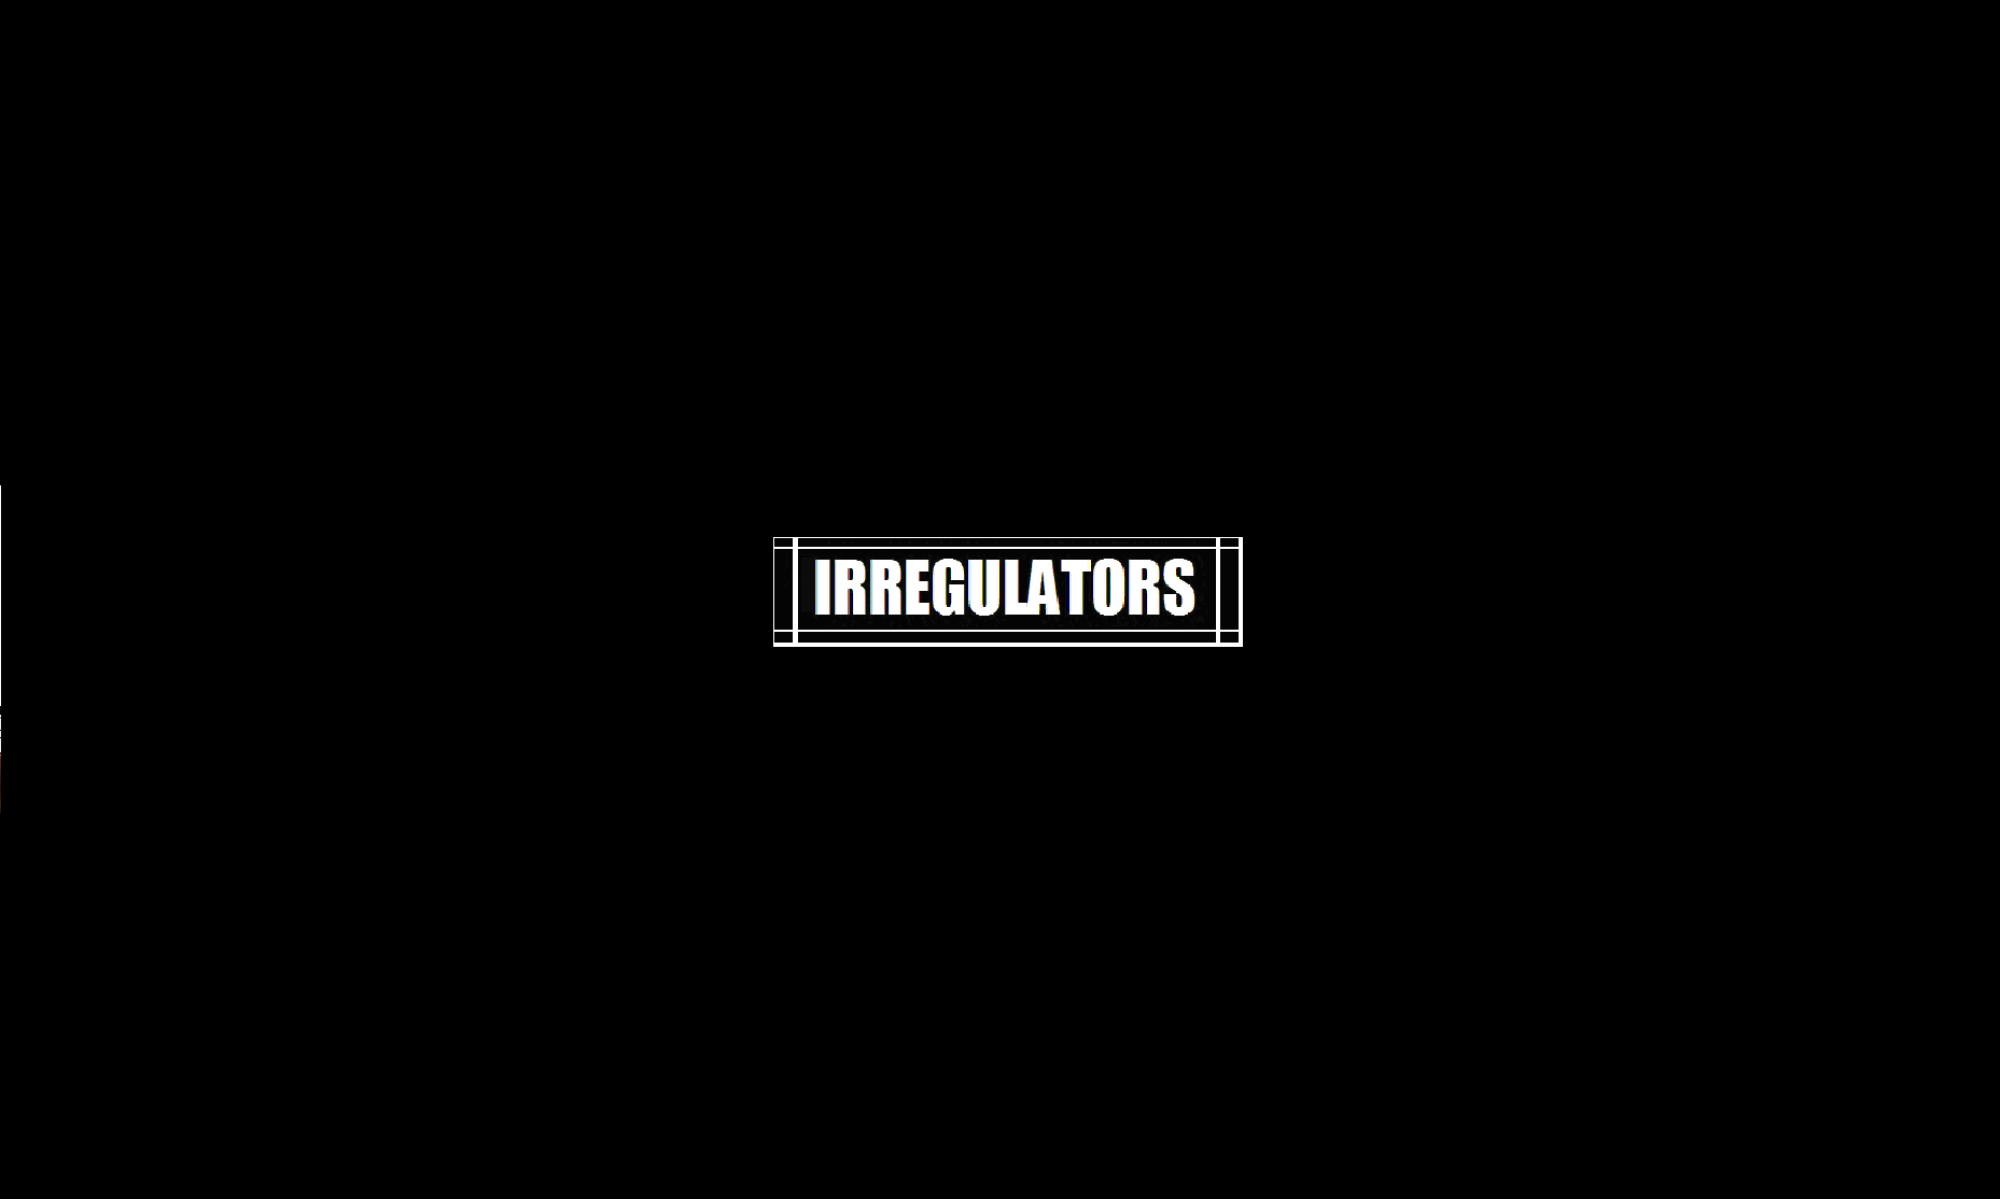 Irrregulators